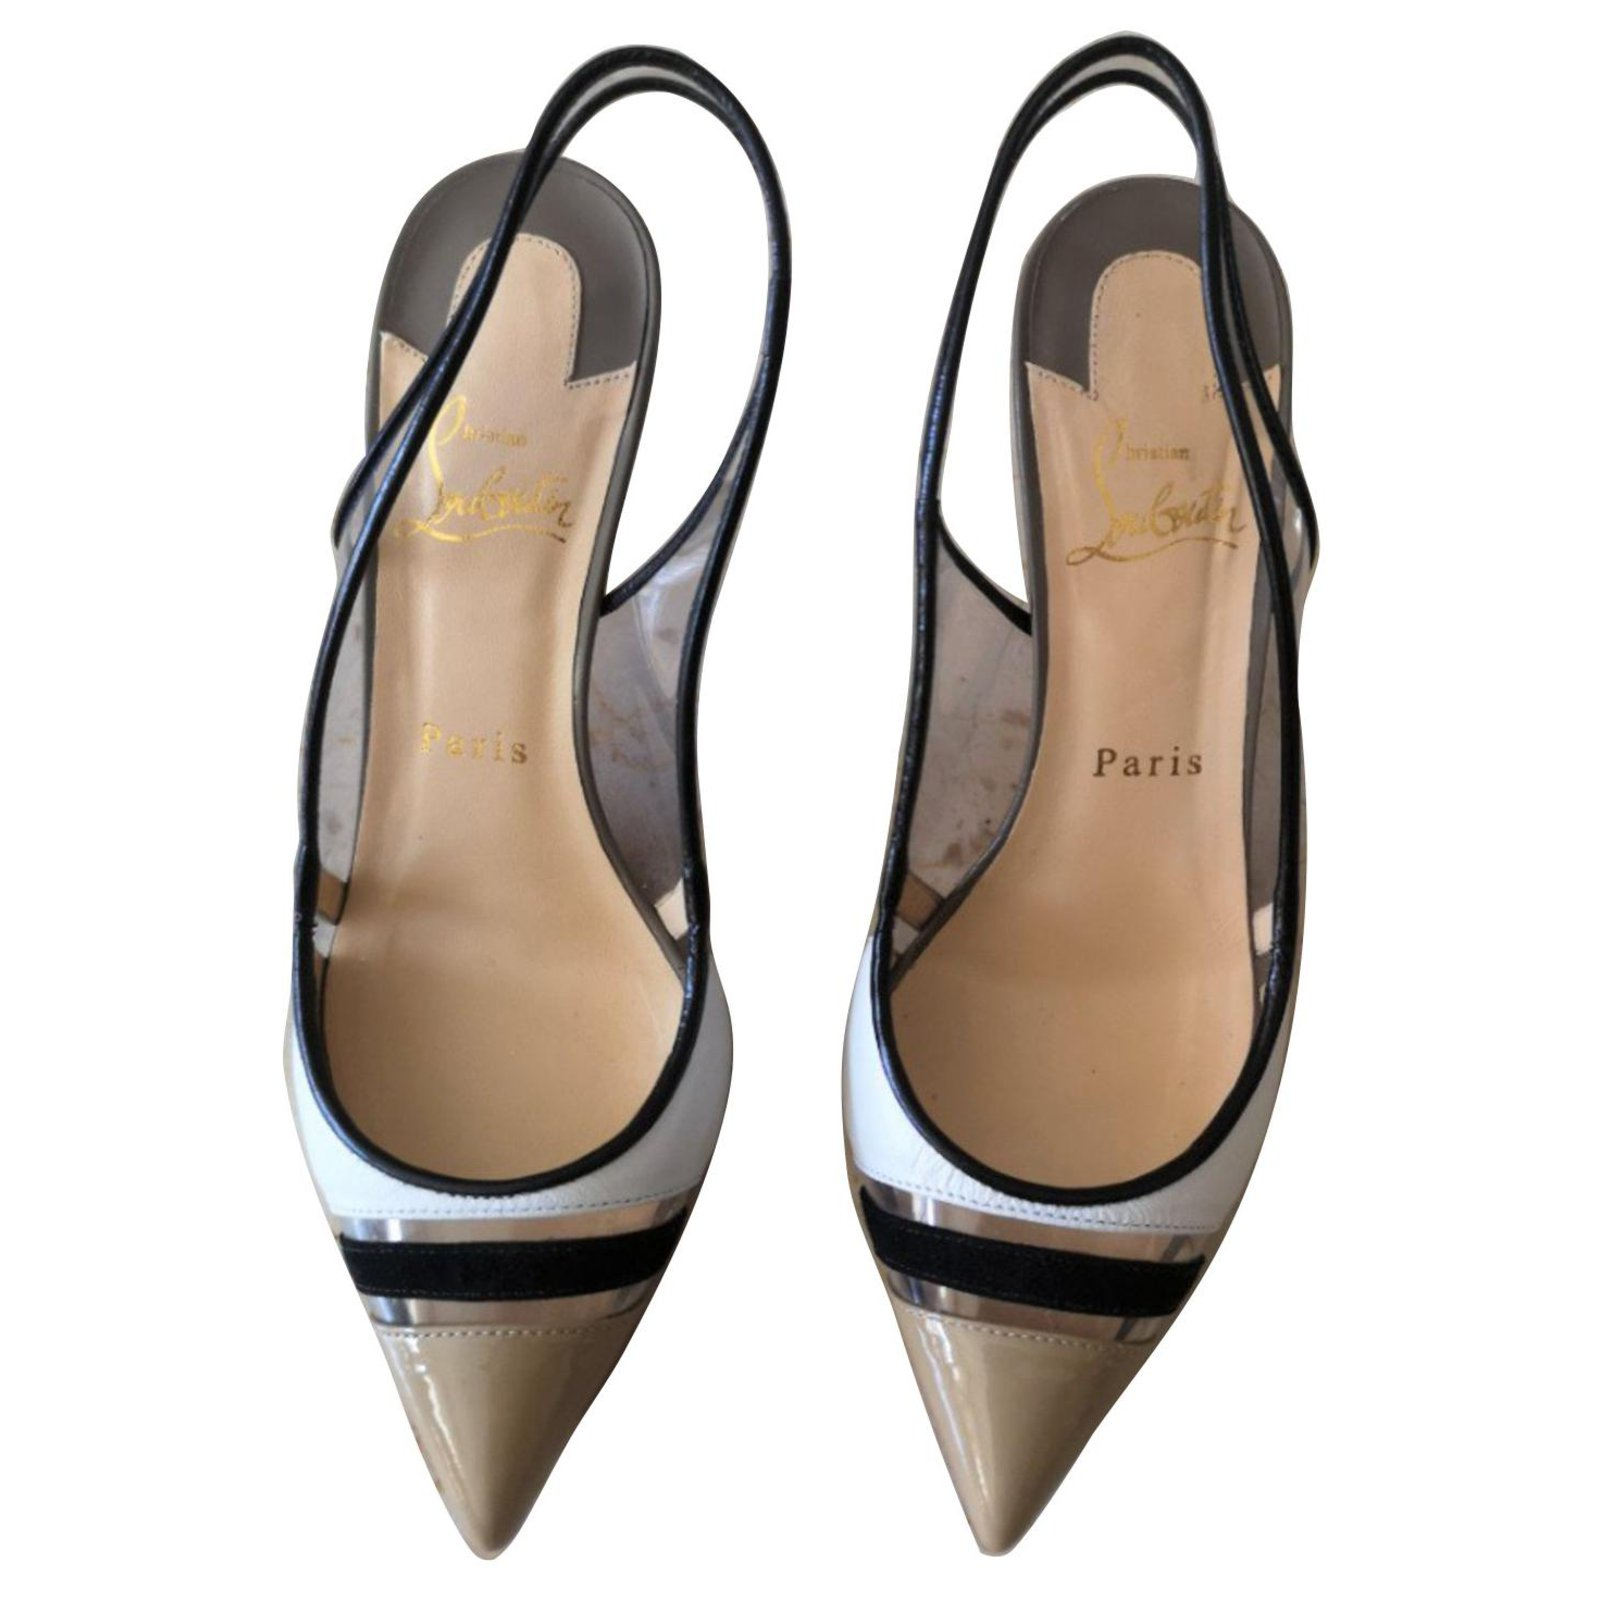 outlet store 84be5 6dc5a Christian Louboutin black, white and nude patent slingbacks heels